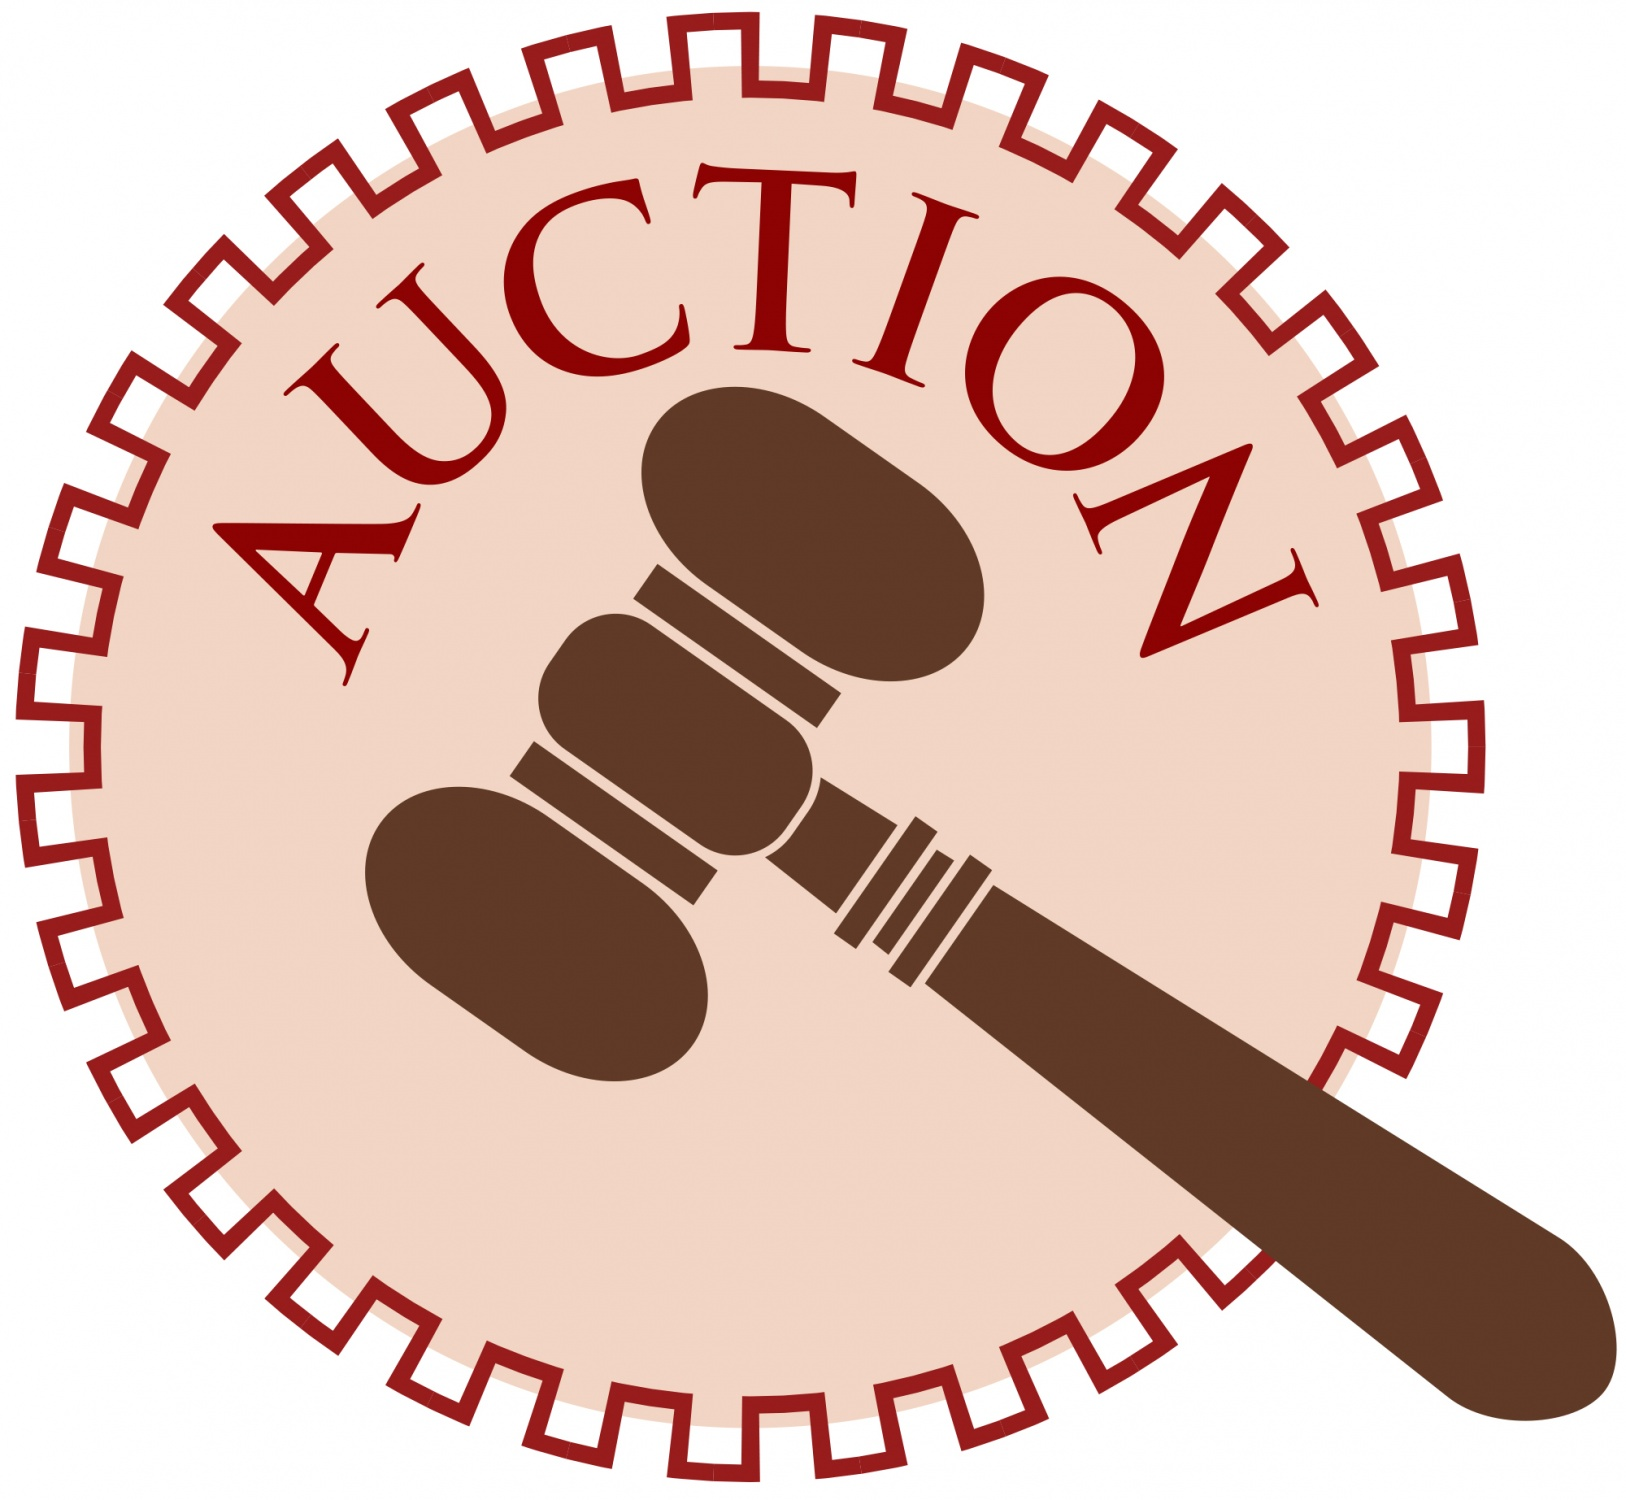 Auction gavel clipart images